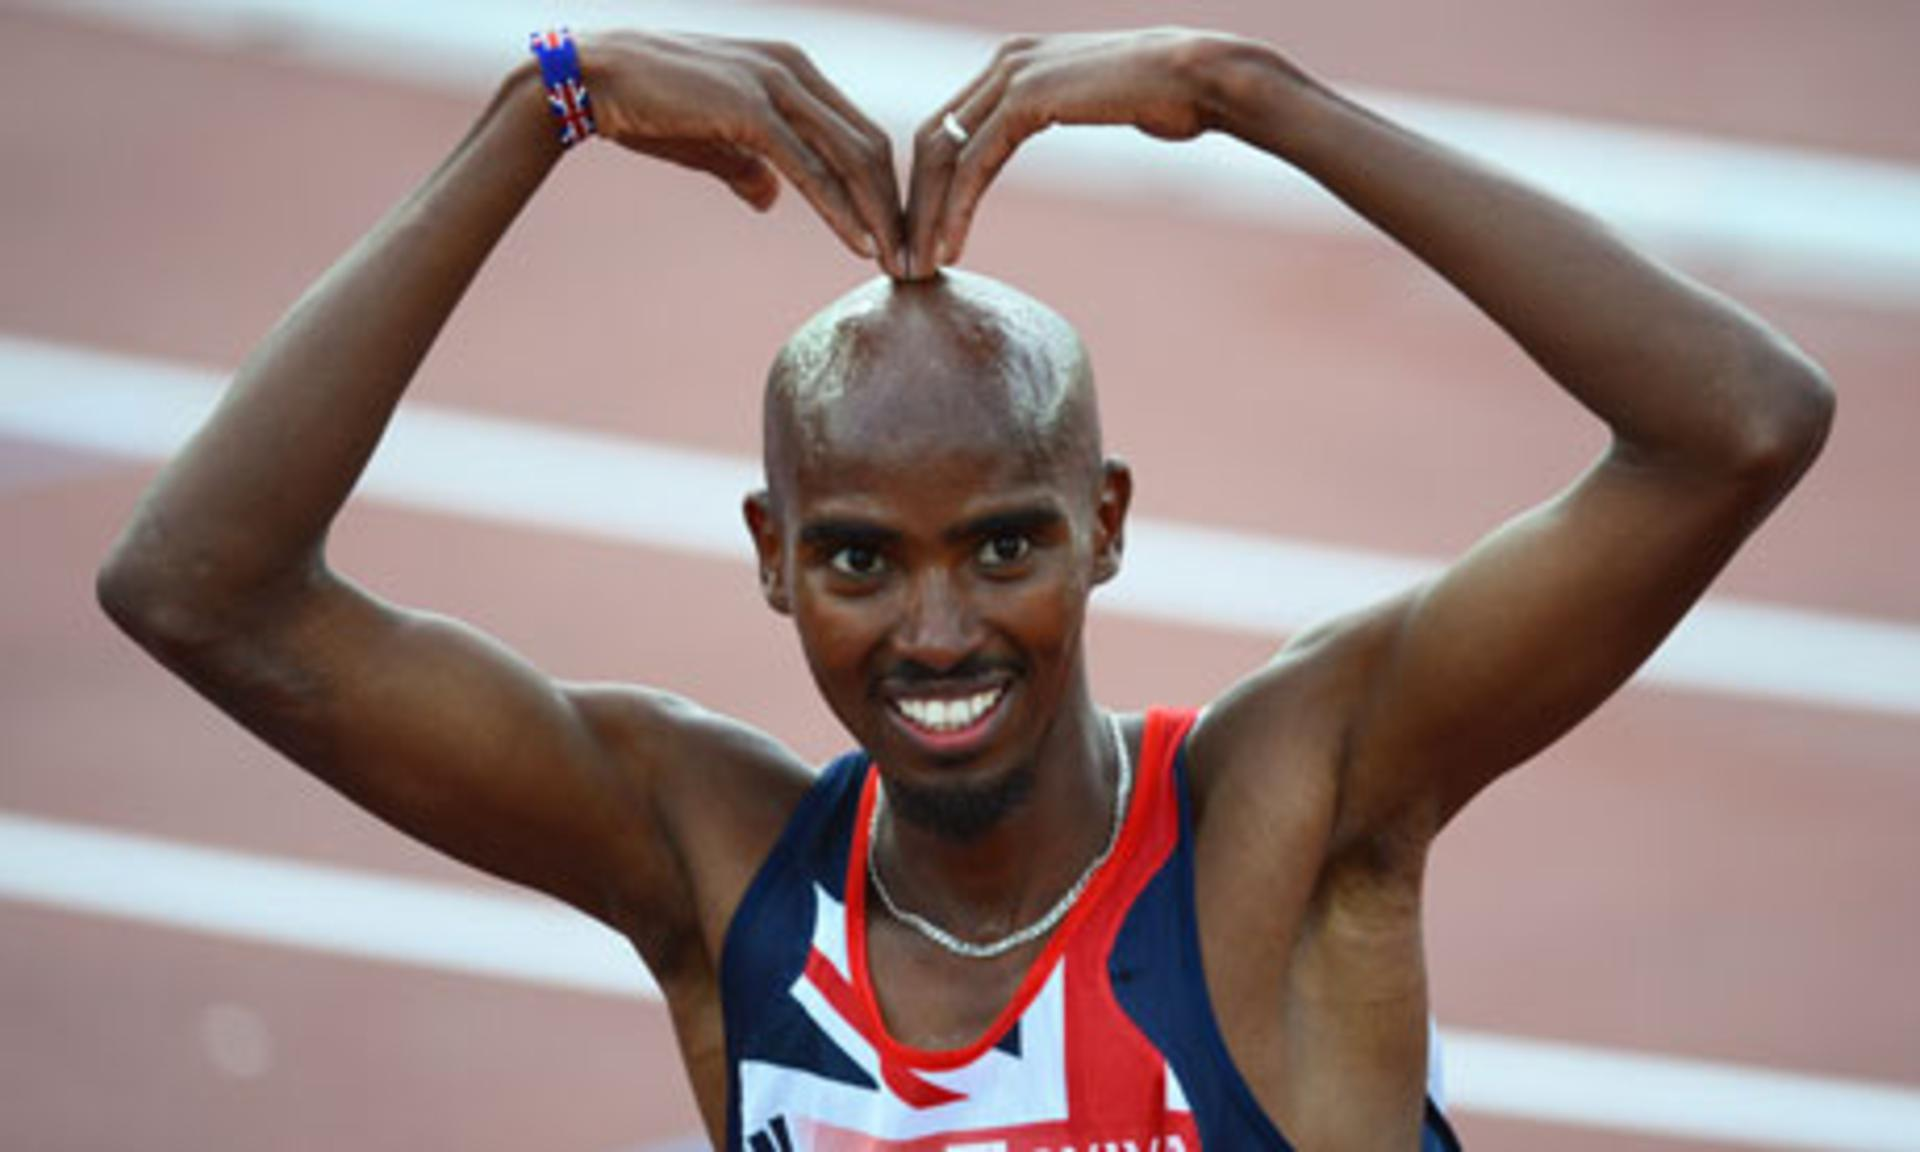 Farah bids to give British fans memorable farewell